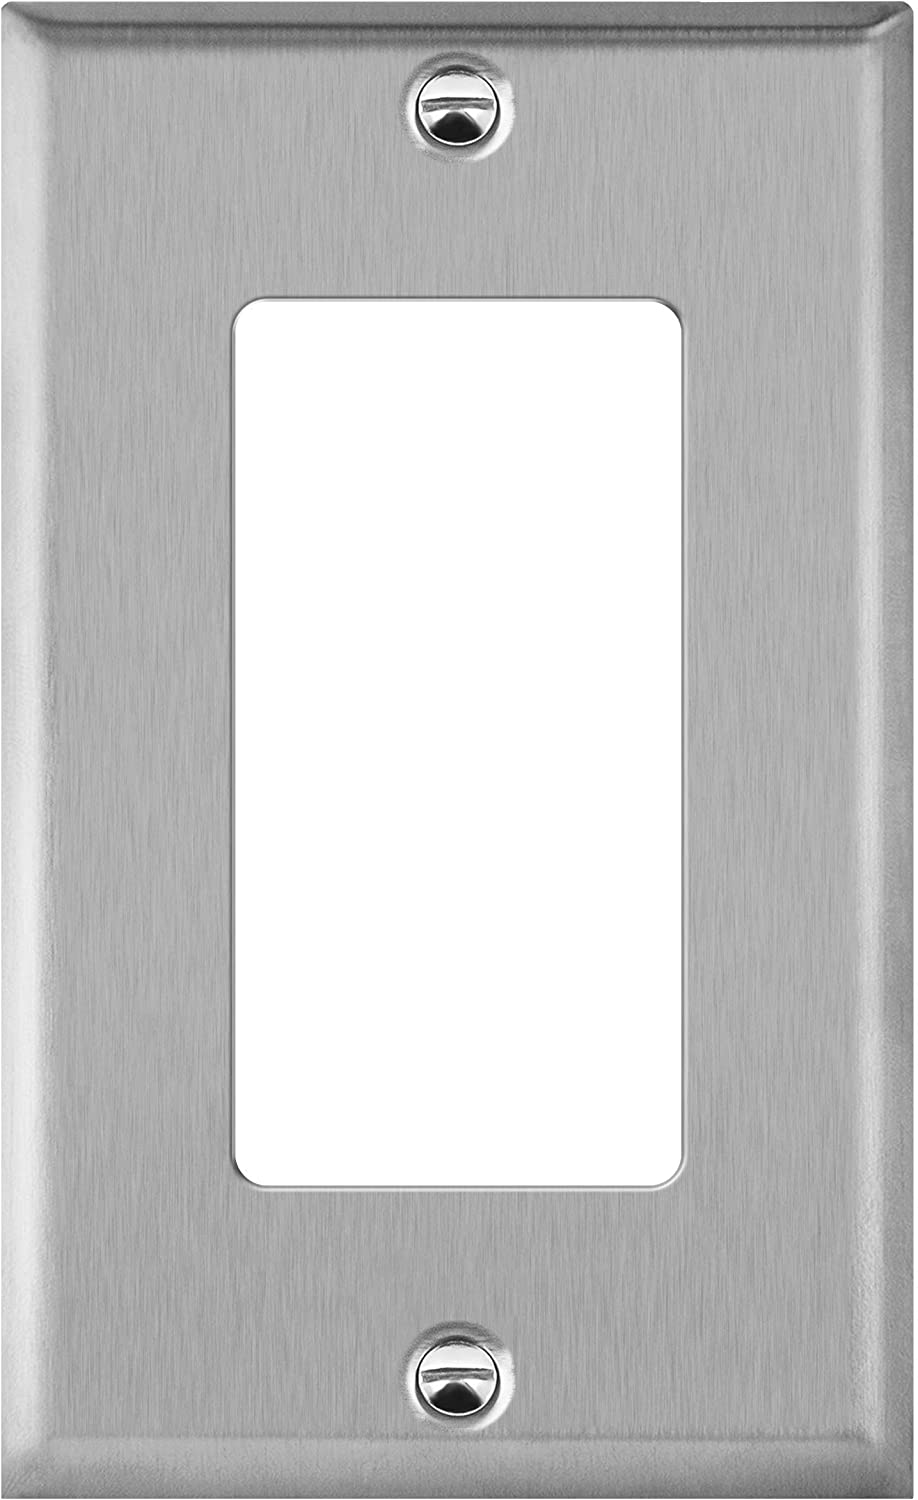 """ENERLITES Decorator Switch or Receptacle Outlet Metal Wall Plate, Corrosion Resistant, Size 1-Gang 4.50"""" x 2.76"""", UL Listed, 7731, 430 Stainless Steel, Silver"""